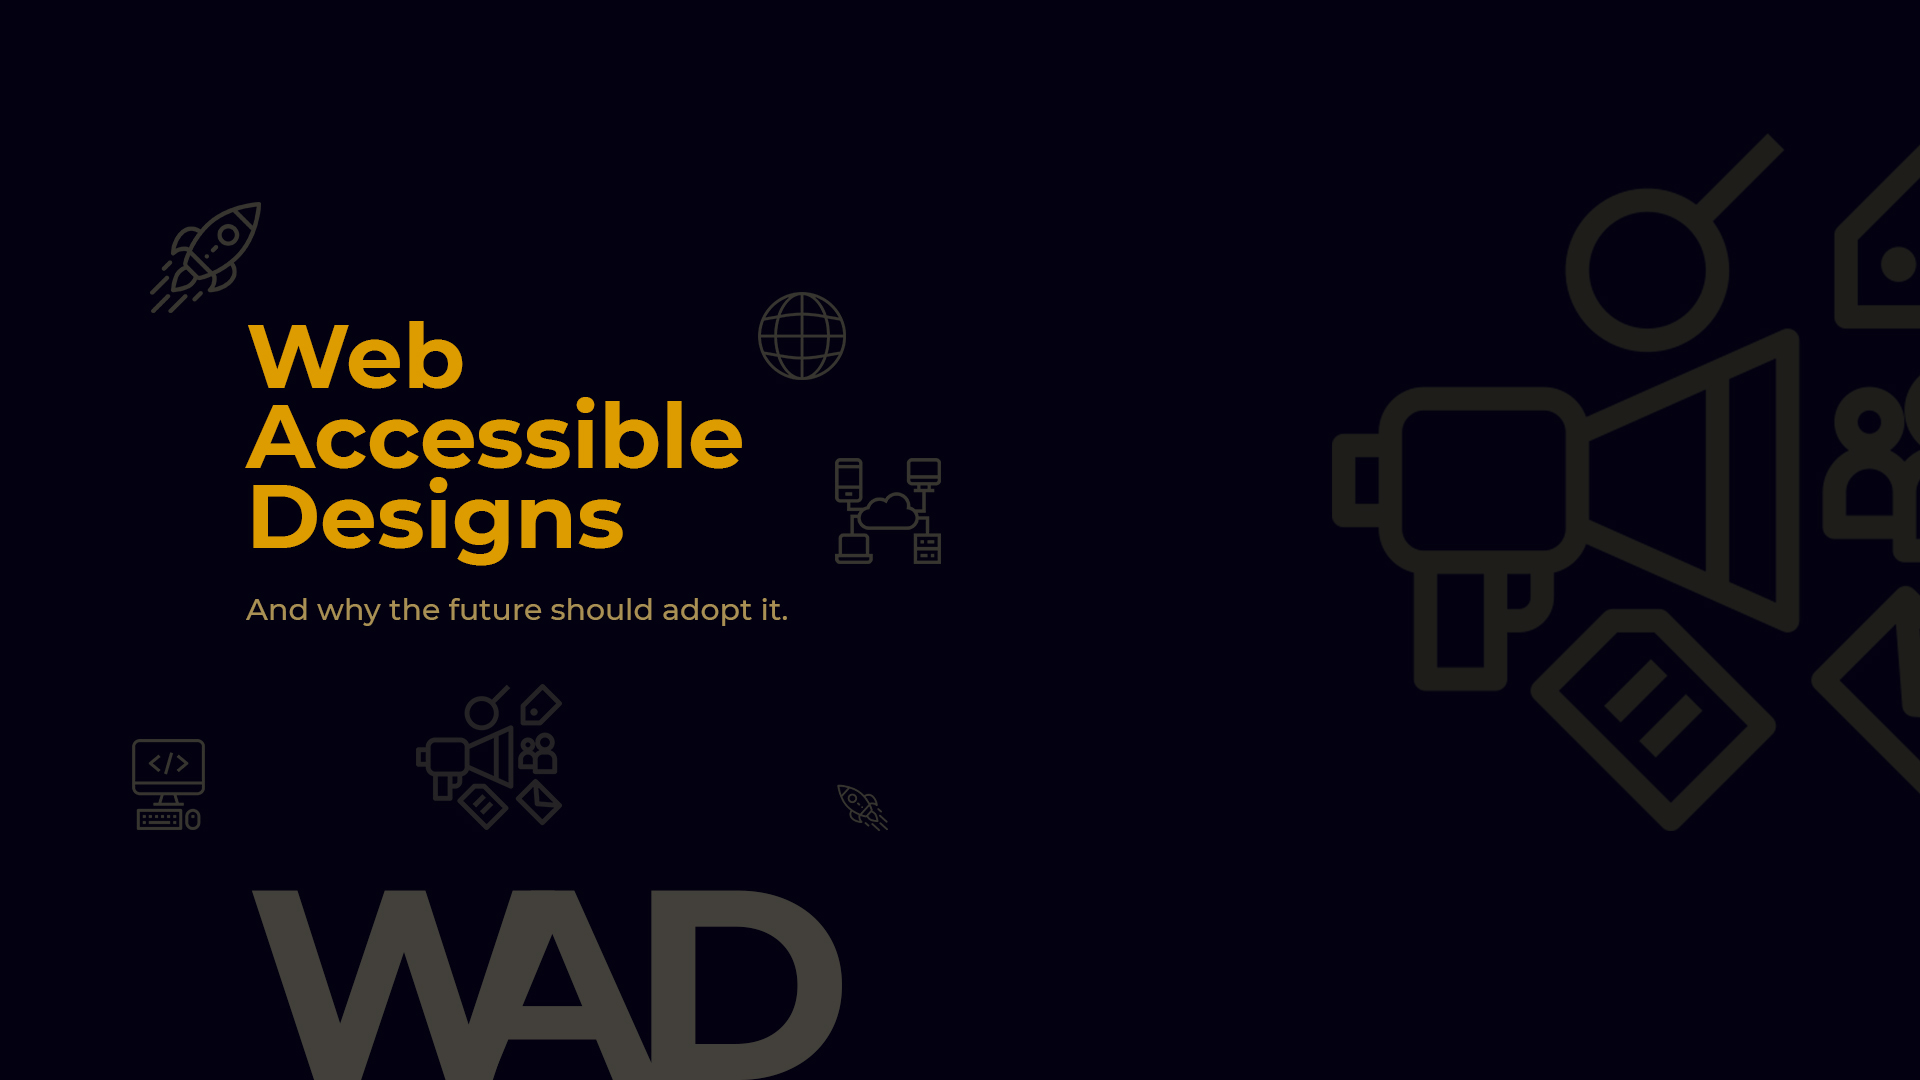 Web Accessible Design